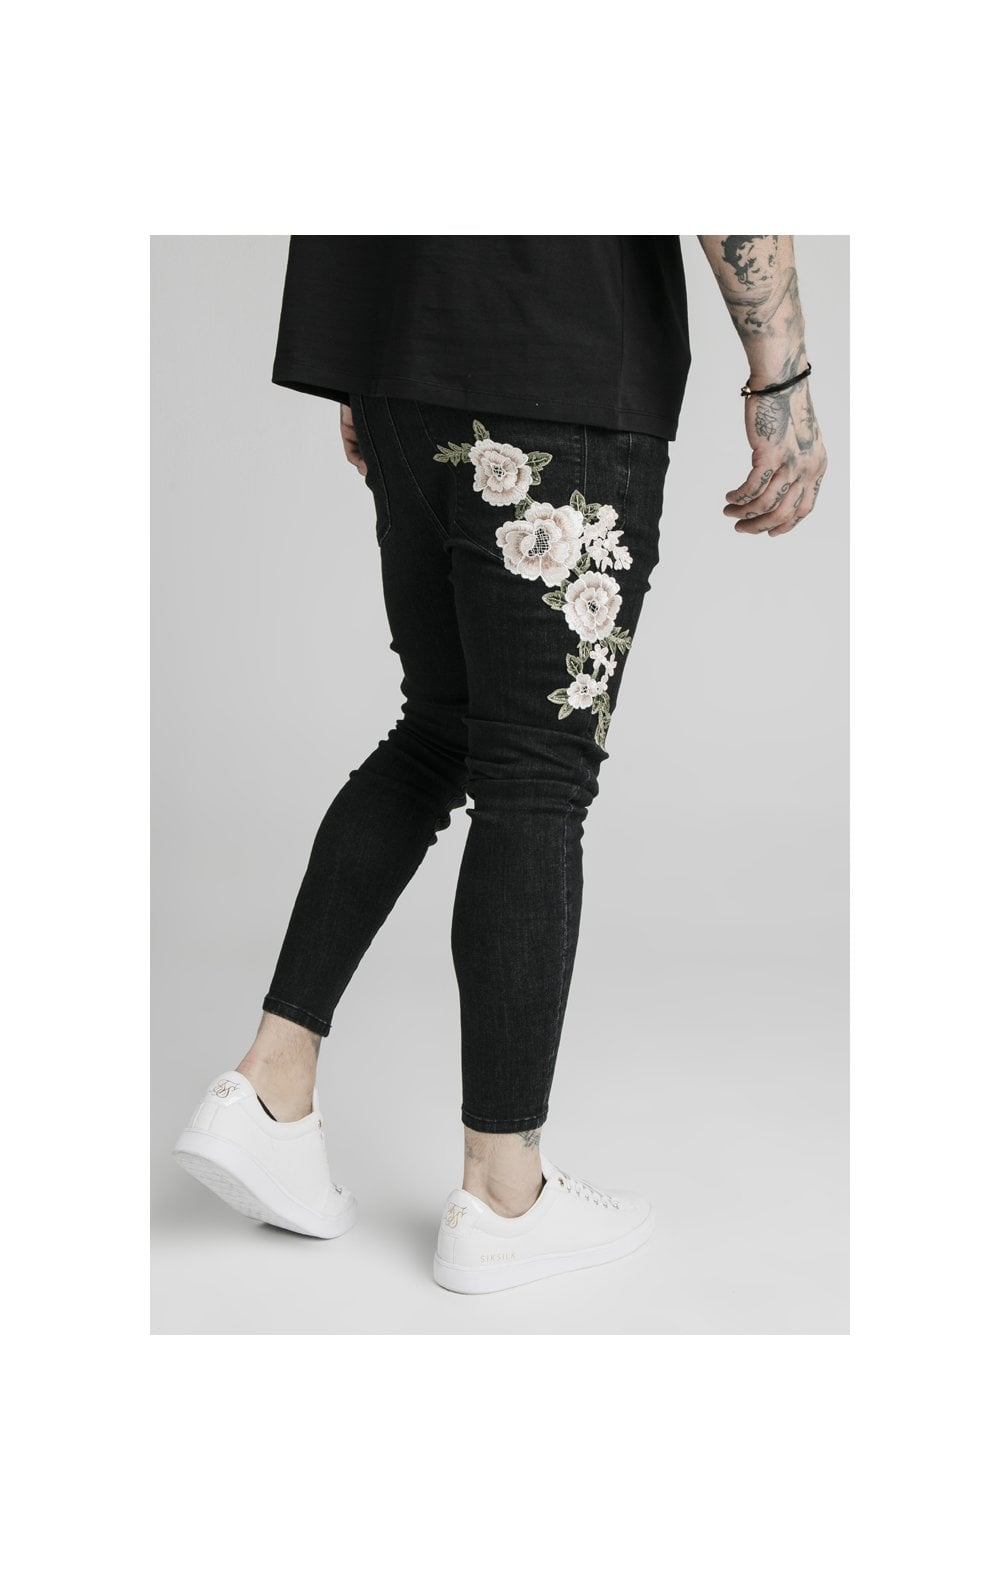 SikSilk Drop Crotch Pleated Appliqu Denims - Black (2)